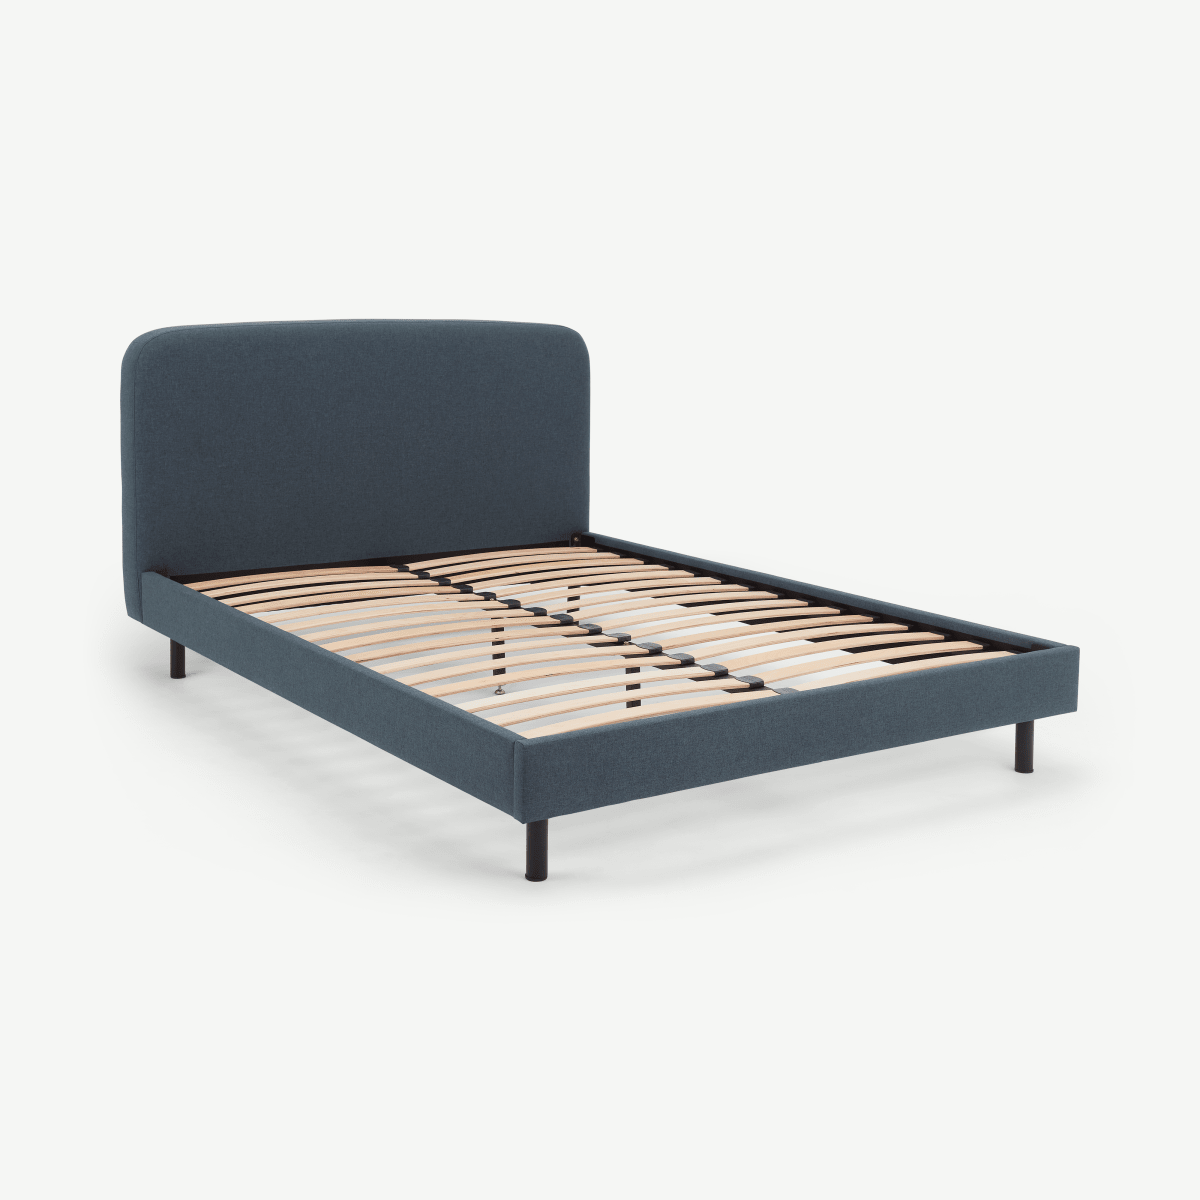 Besley Double Bed, Aegean blue